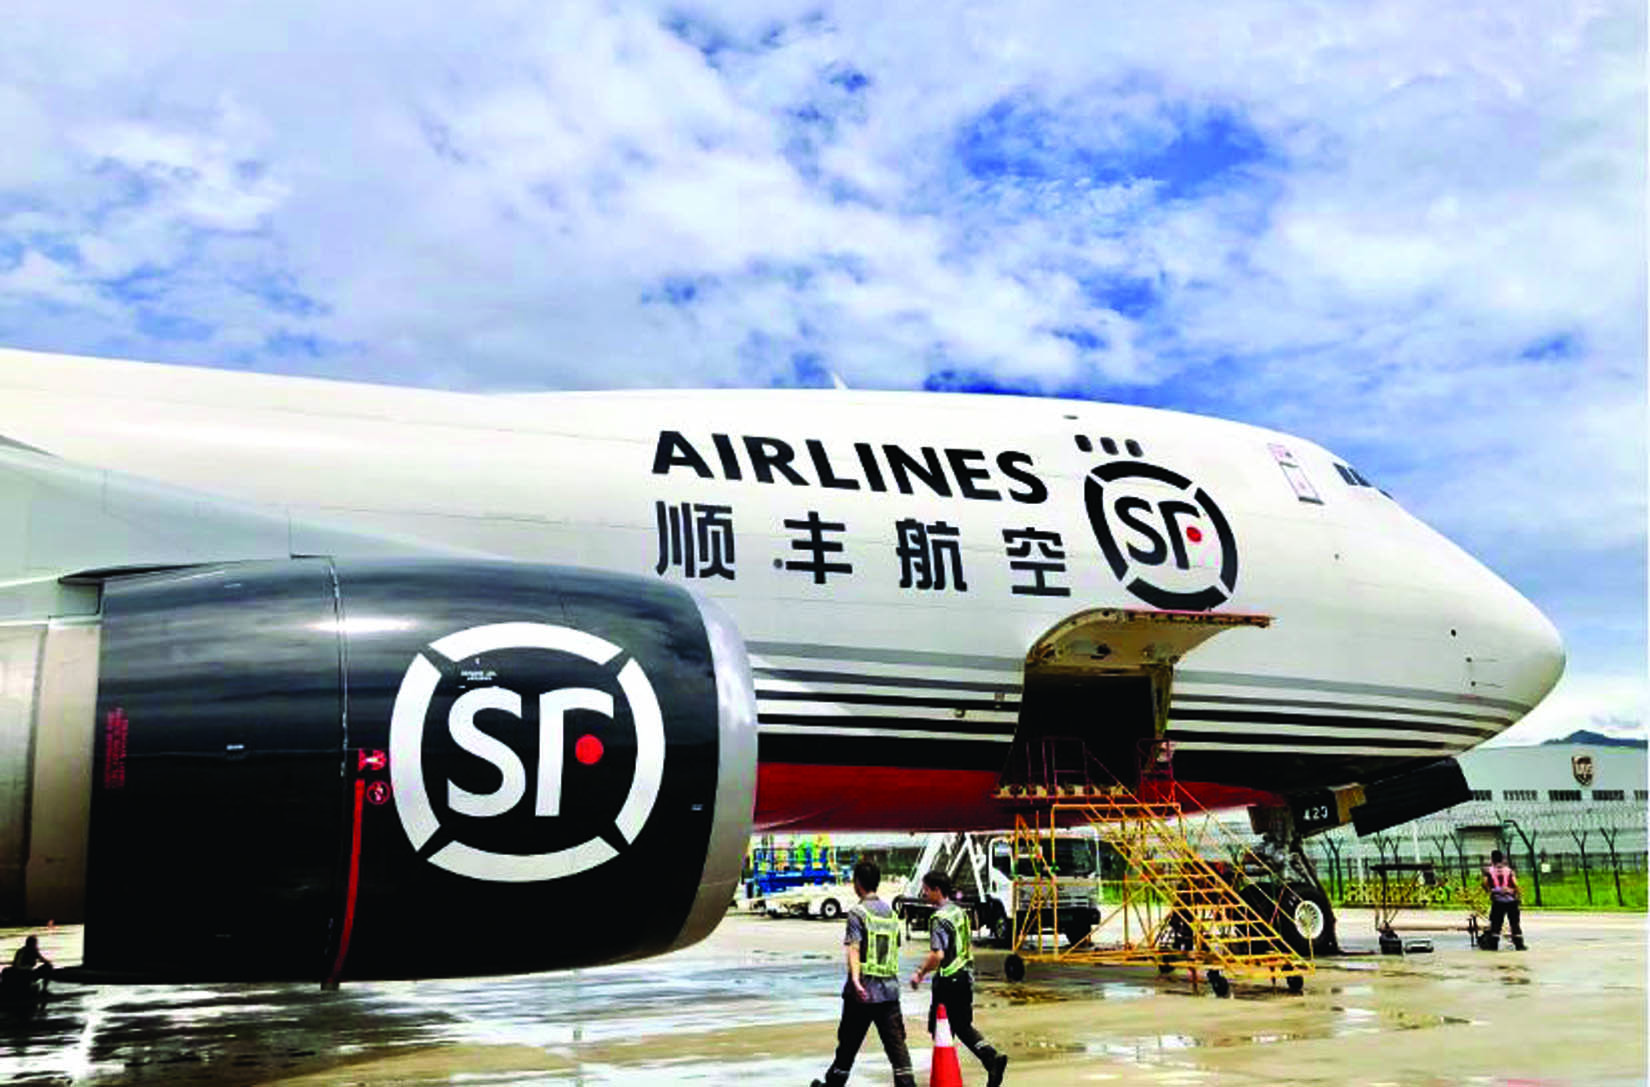 SF Airlines launches new cargo route Chengdu-Dhaka